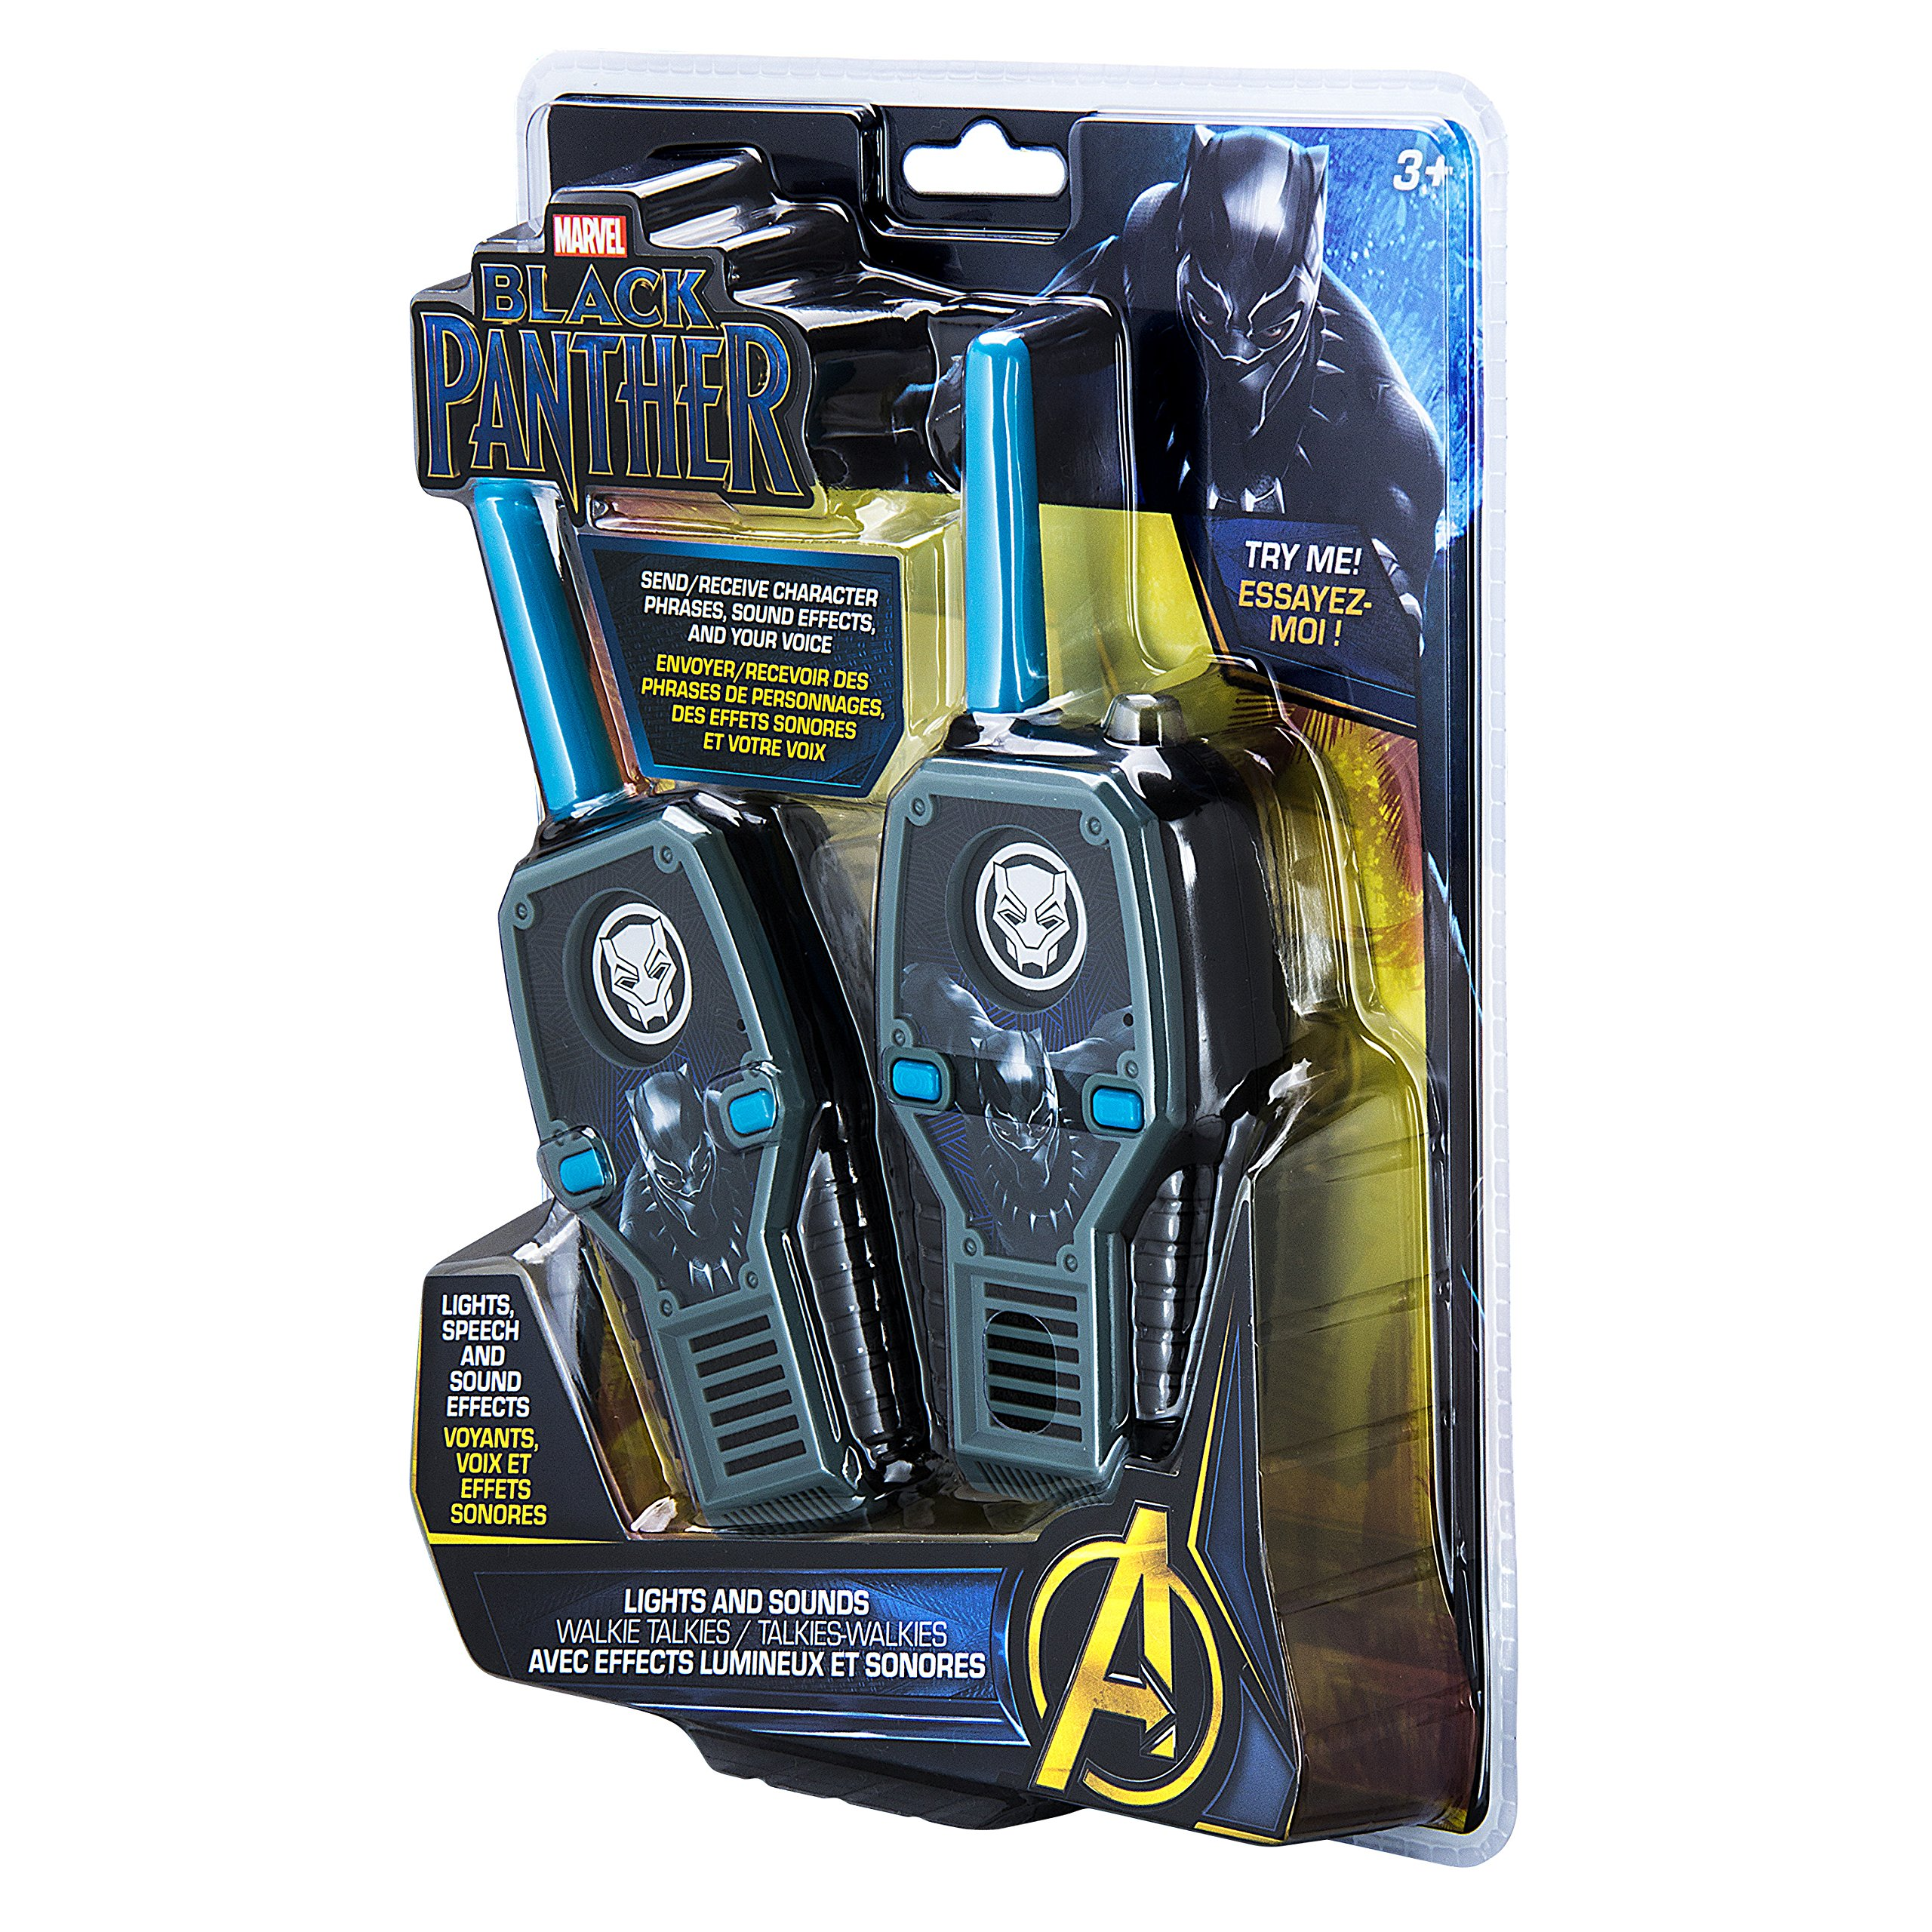 eKids Black Panther FRS Walkie Talkies with Lights & Sounds Kid Friendly Easy to Use by eKids (Image #8)